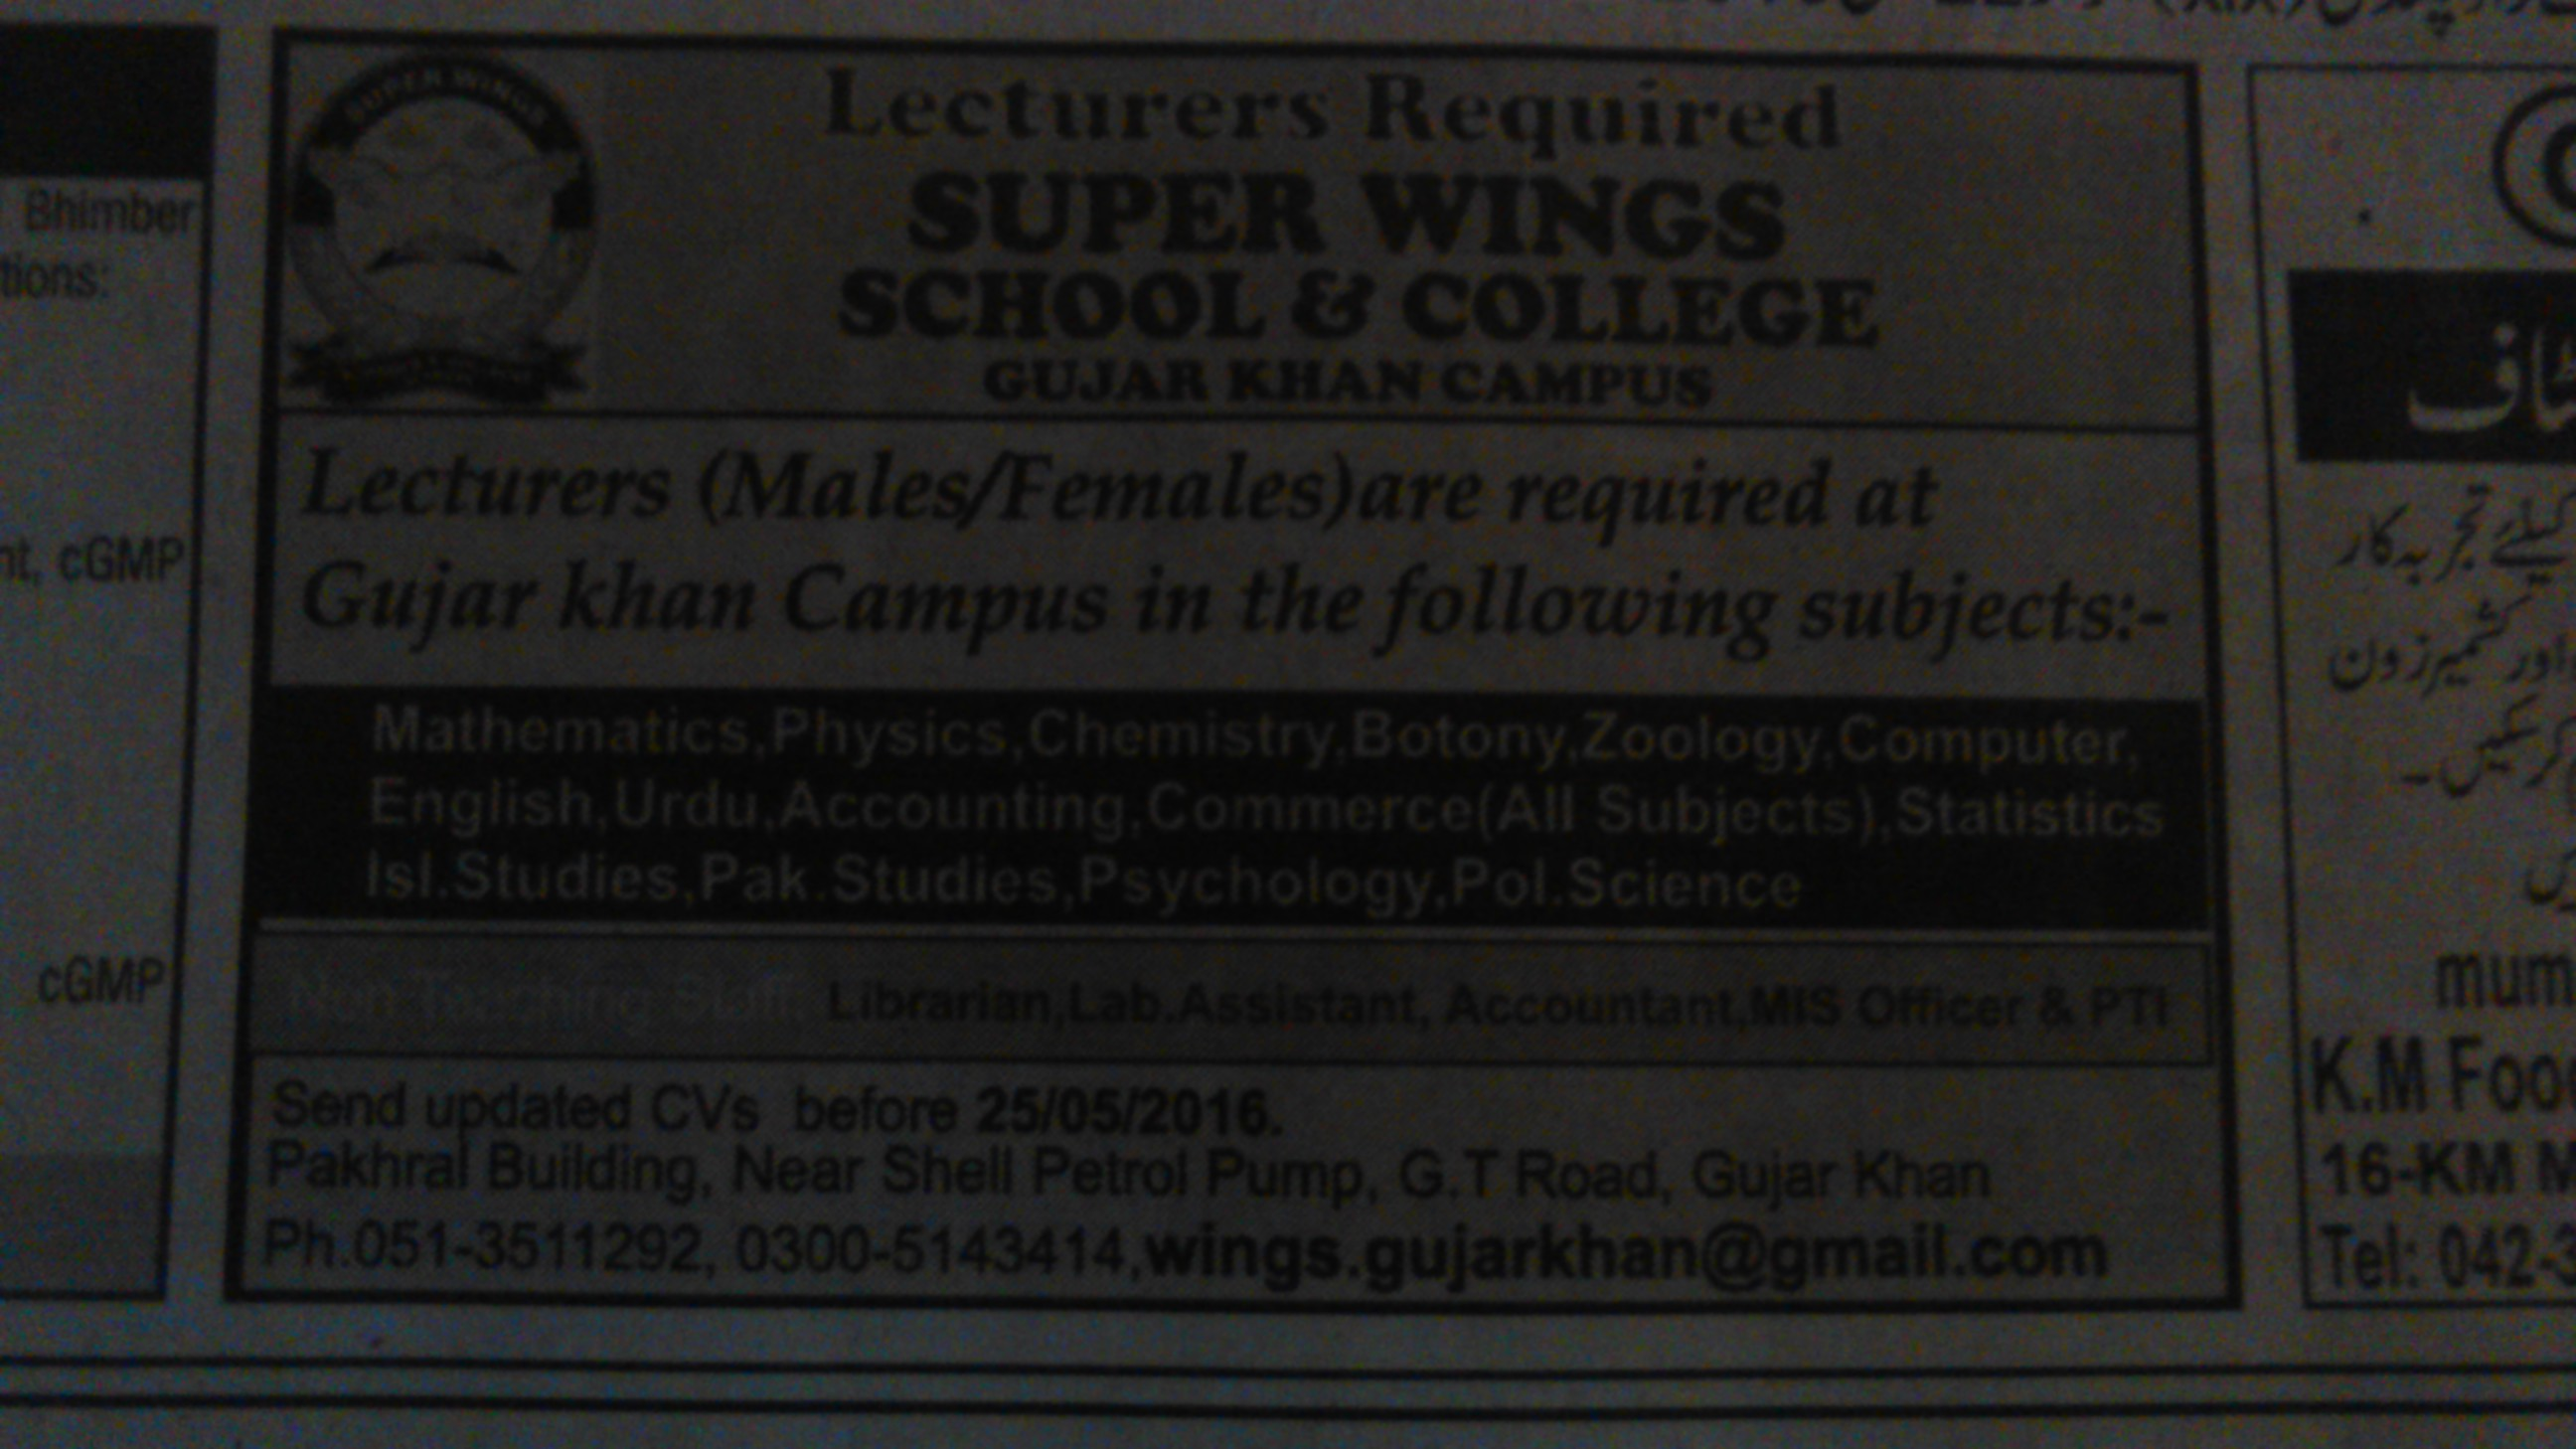 Super Wing School and College Lecturers Required